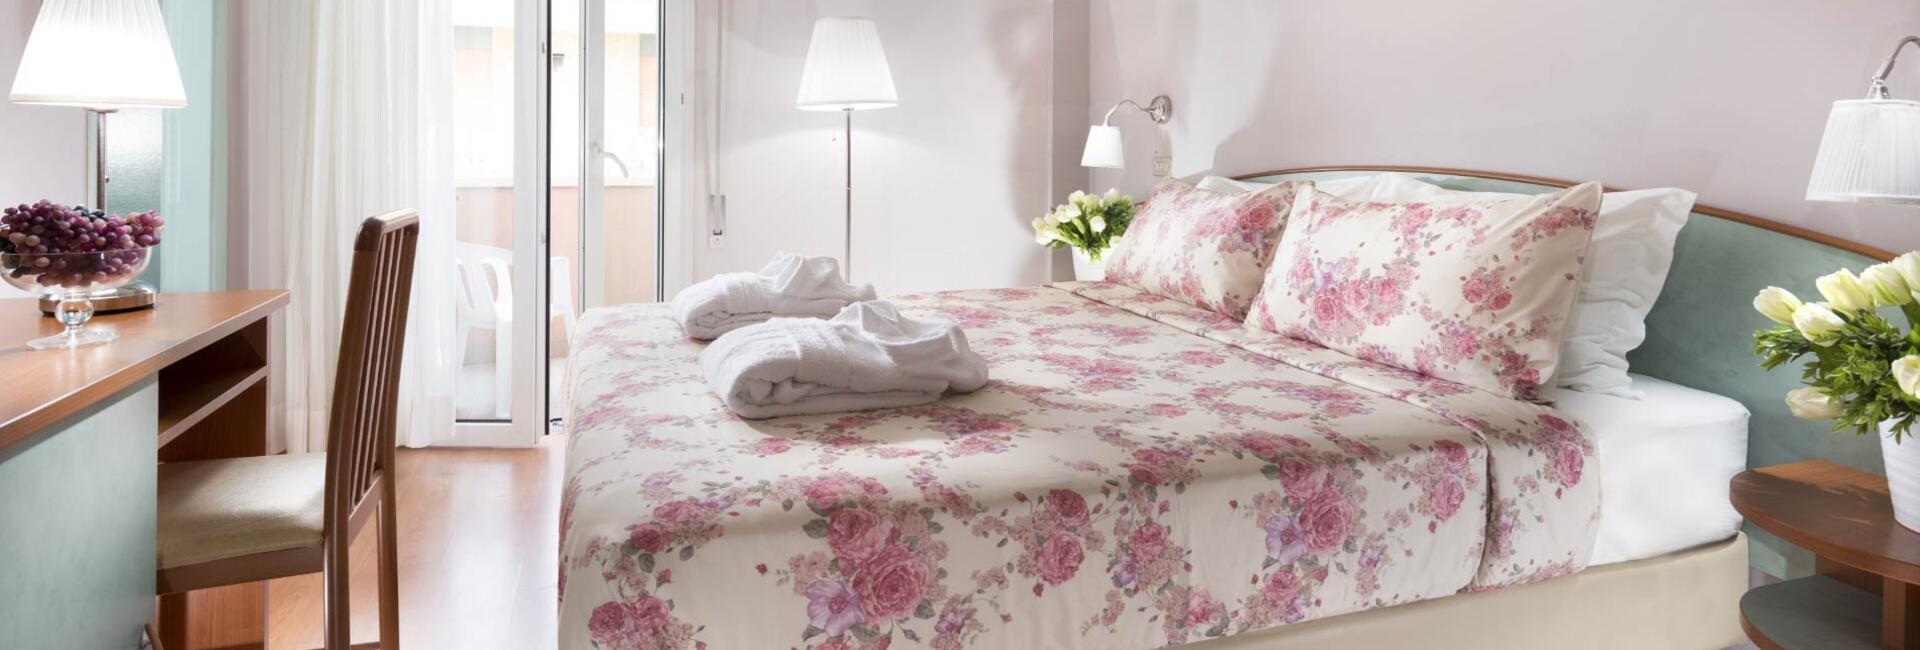 hotelsympathy it camere-comfort 004